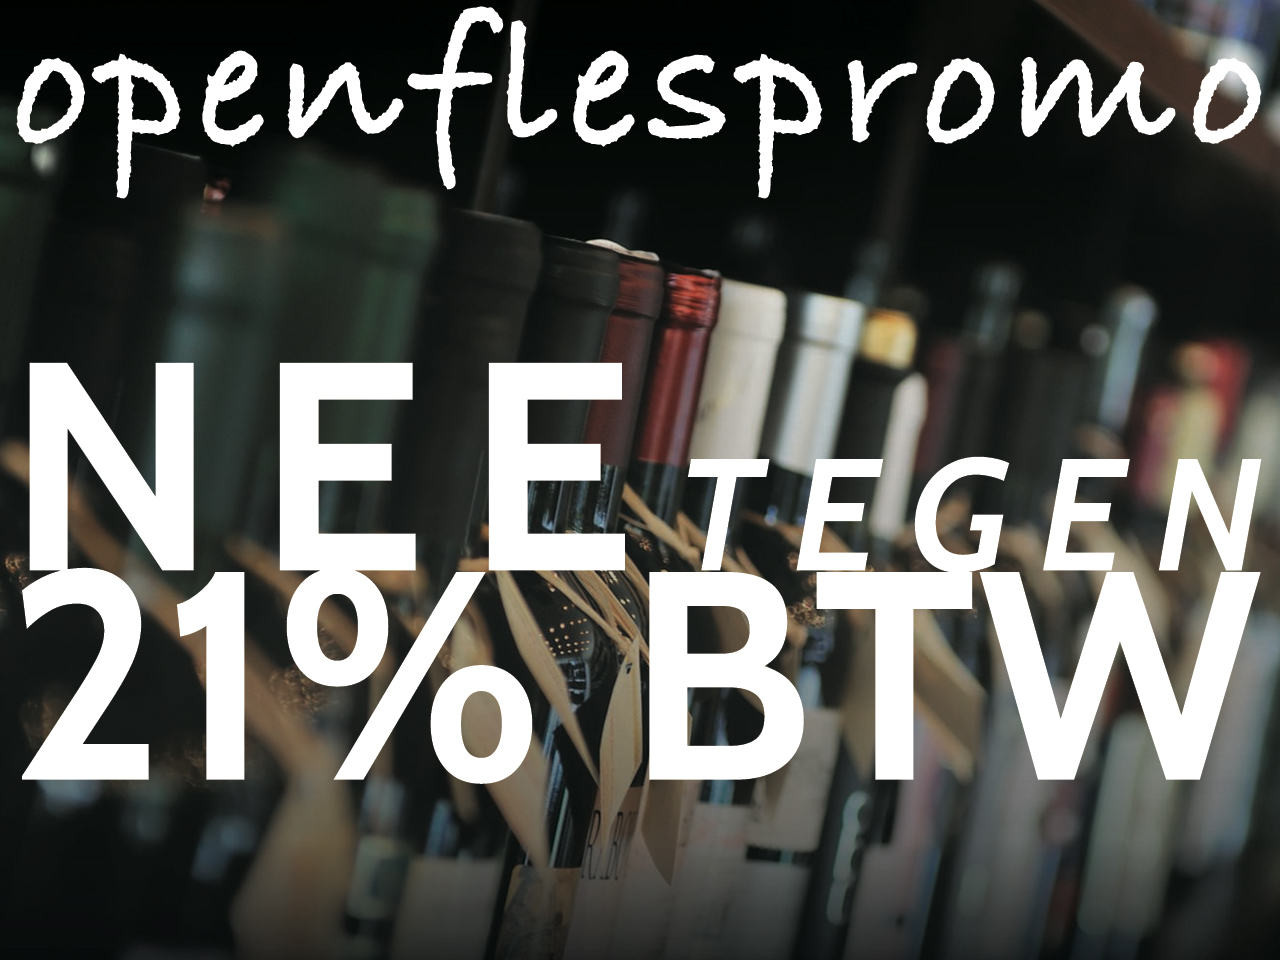 promo openfles 21% BTW korting